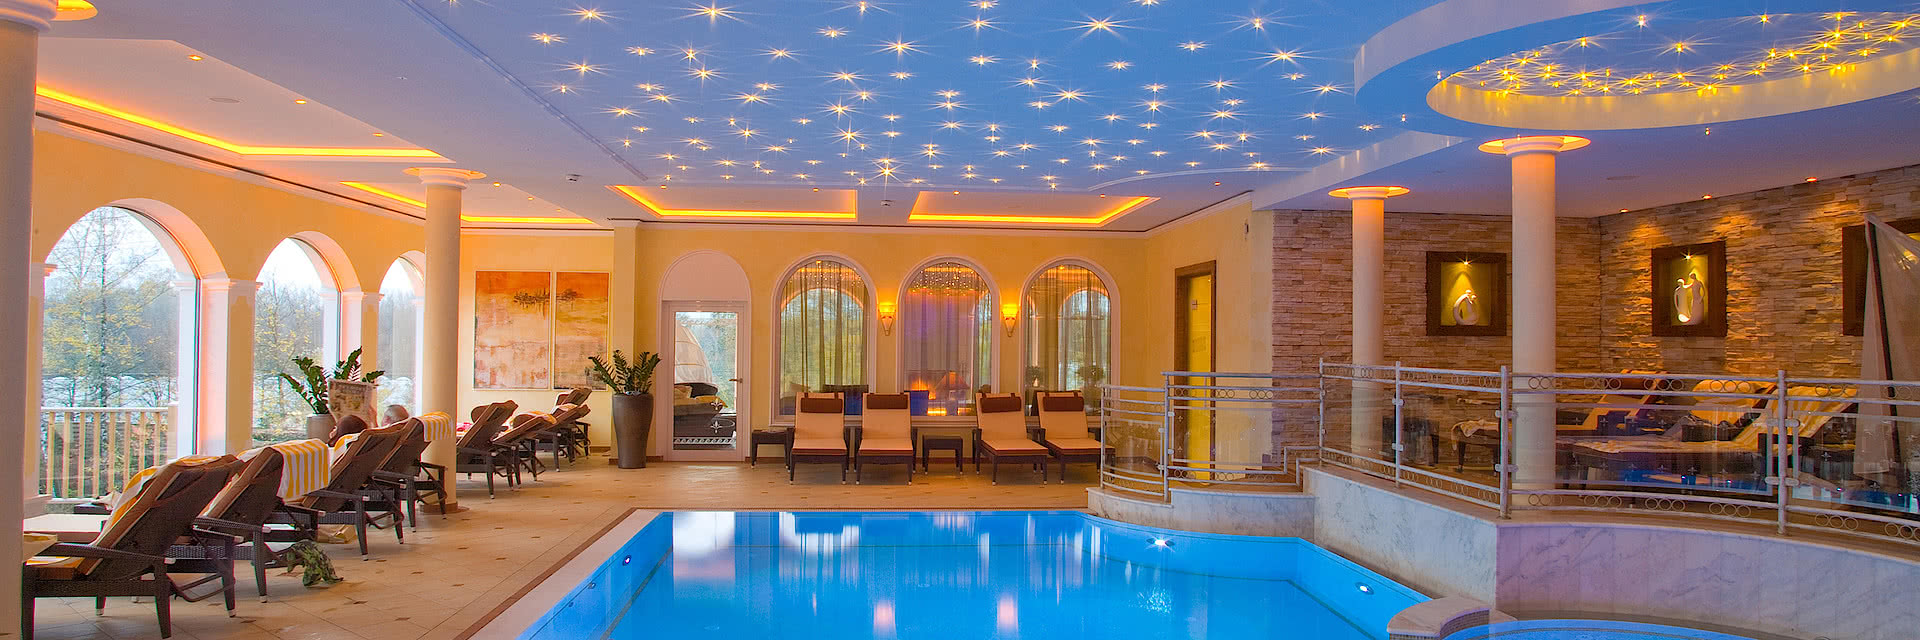 Indoor Pool im Garten SPA im Wellnesshotel Genussdorf Gmachl in Salzburg